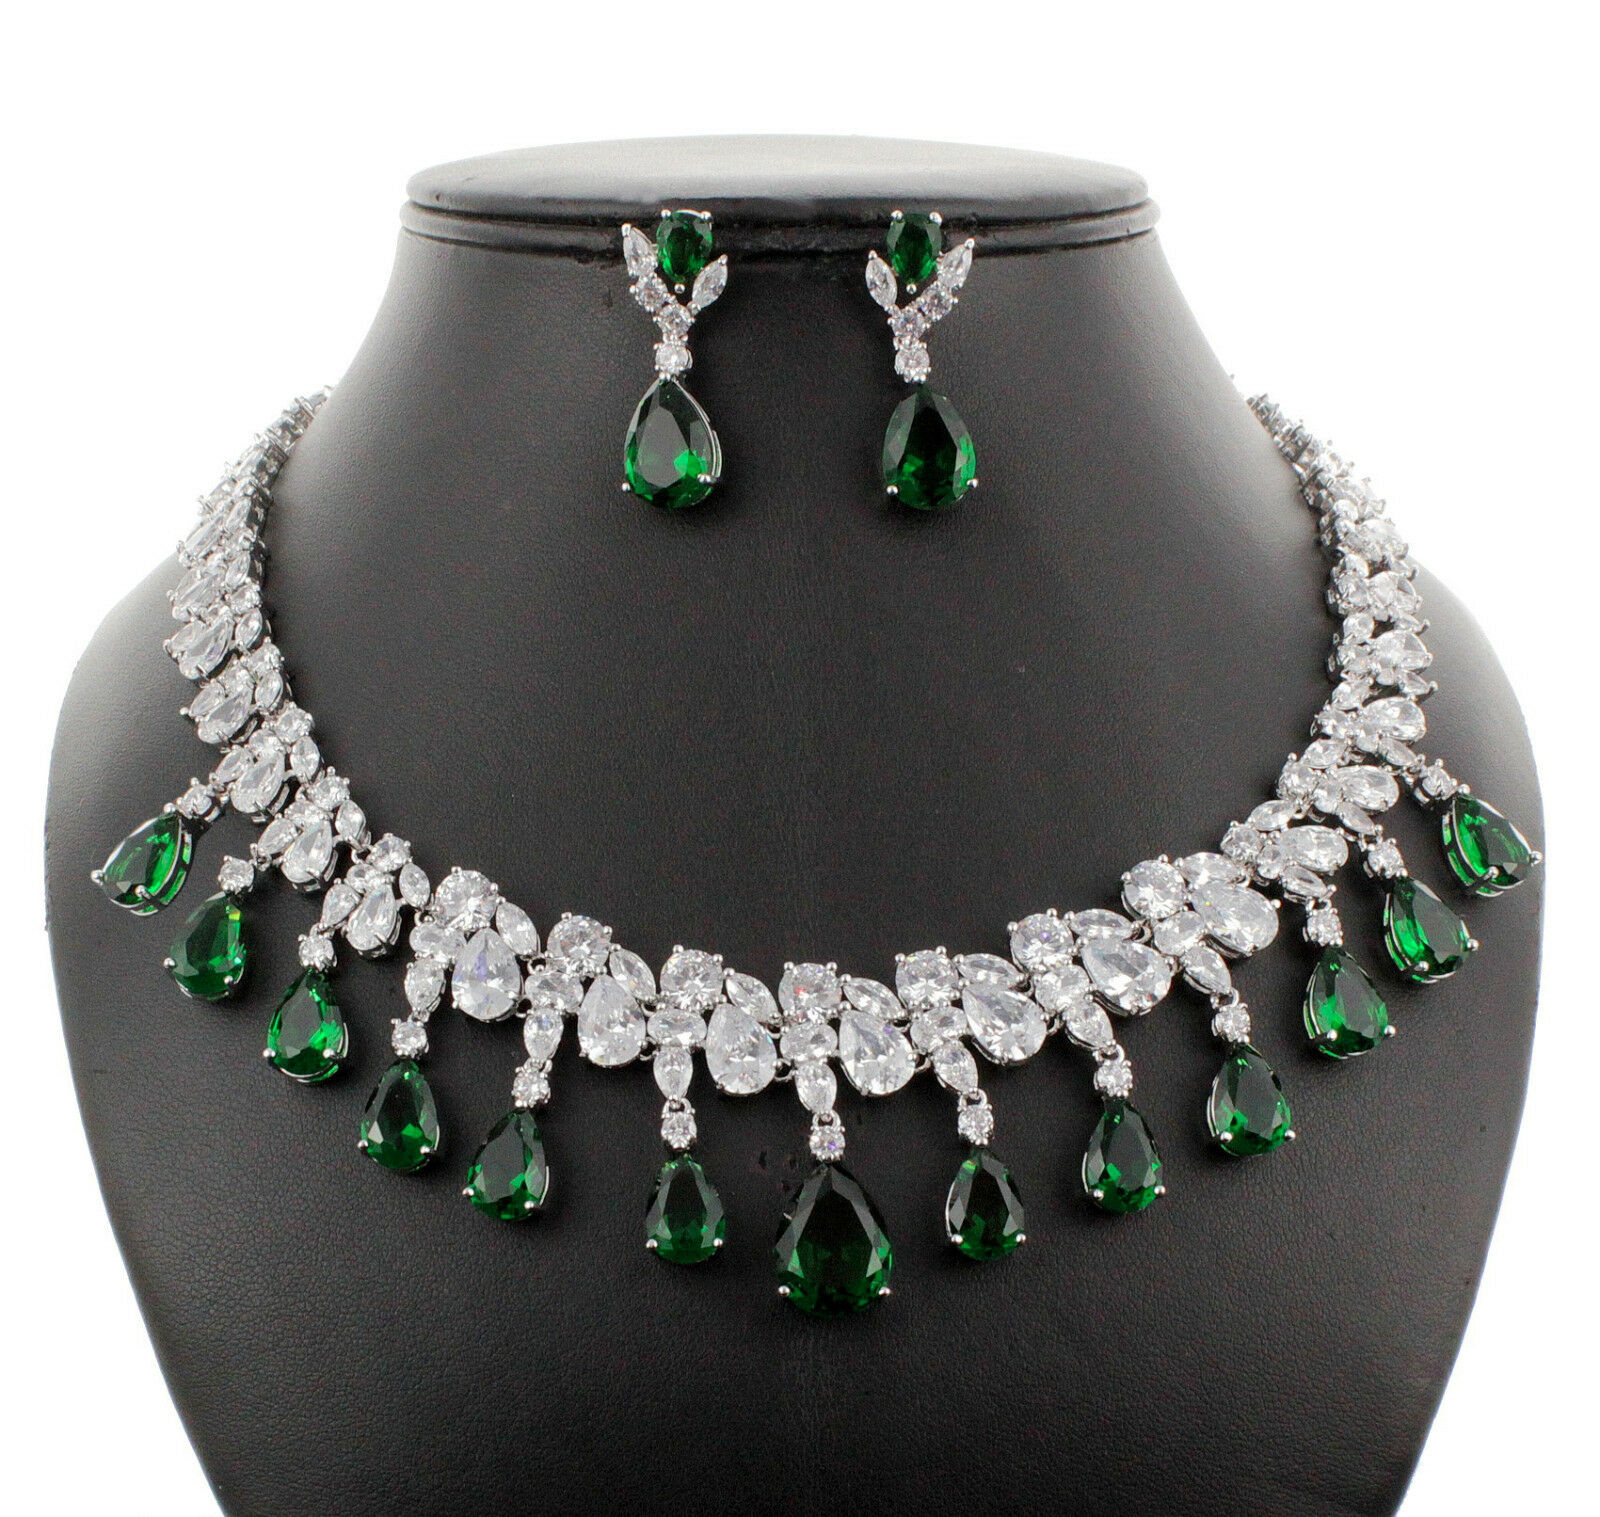 New Bridal Bridesmaid Wedding Emerald Green Dangle Drop Cz Cubic Zirconia Crystal Necklace Earrings Set